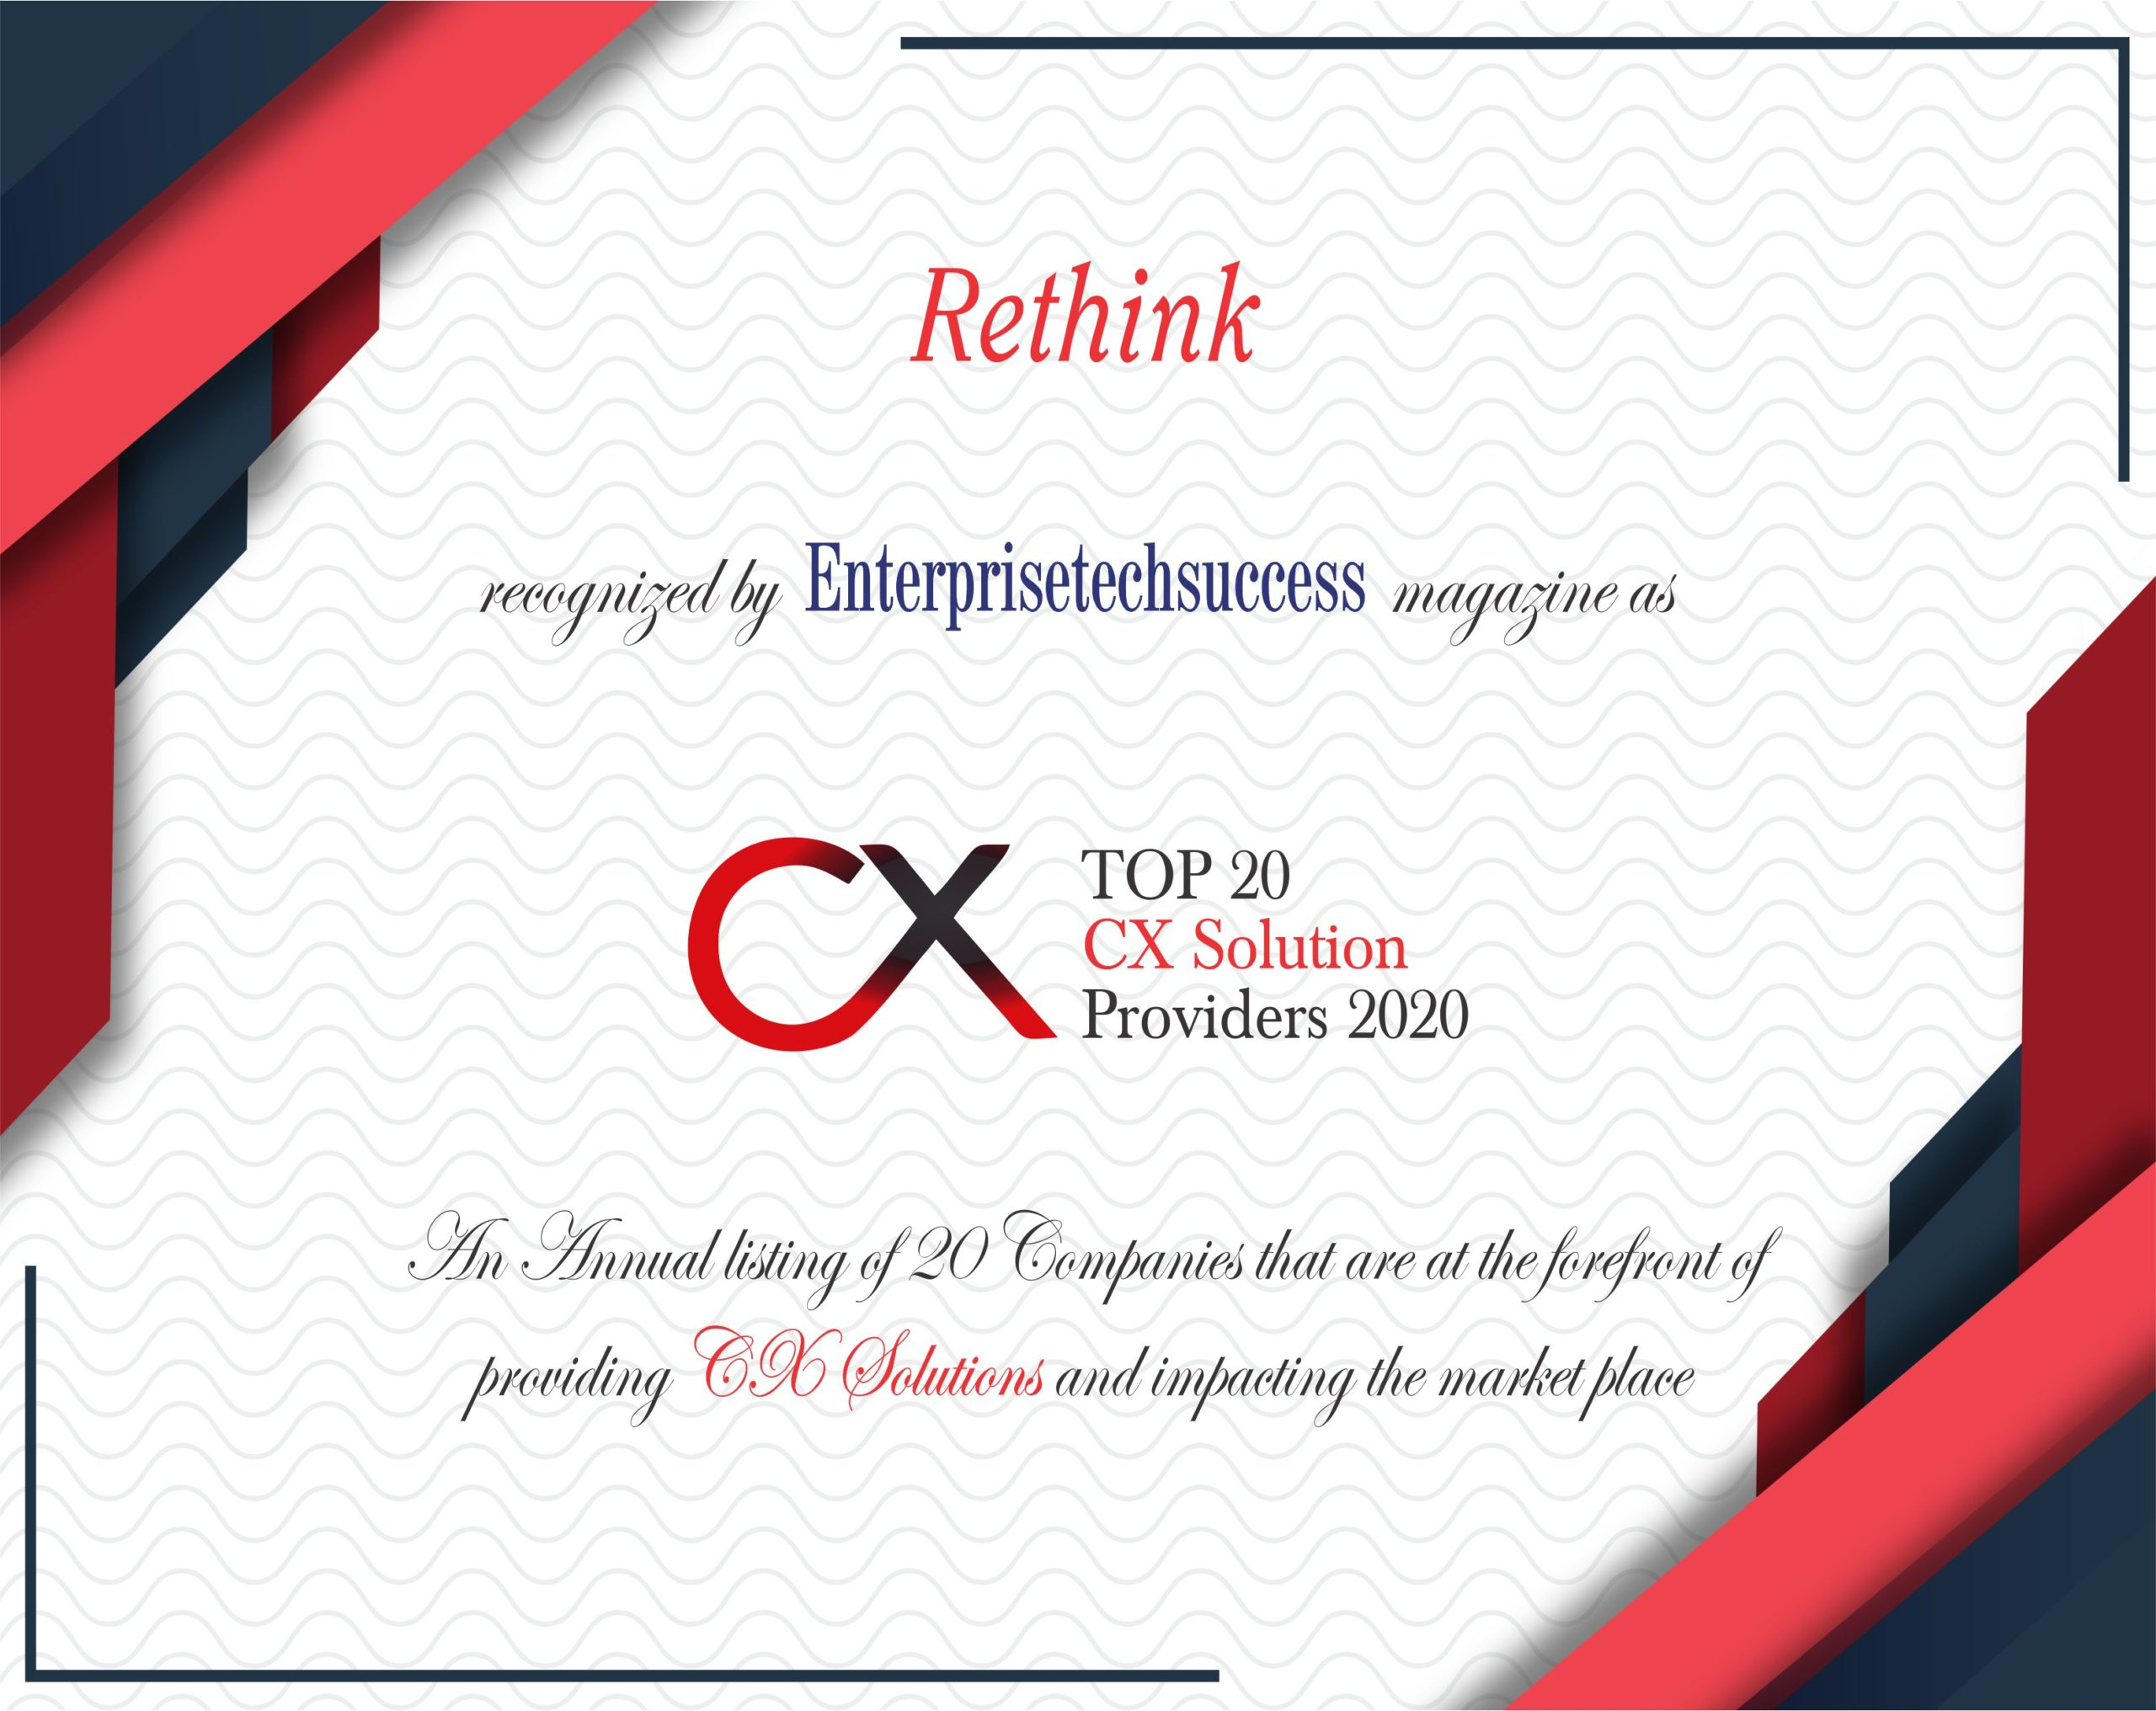 Rethink Top 20 CX Solution Provider 2020 Certificate